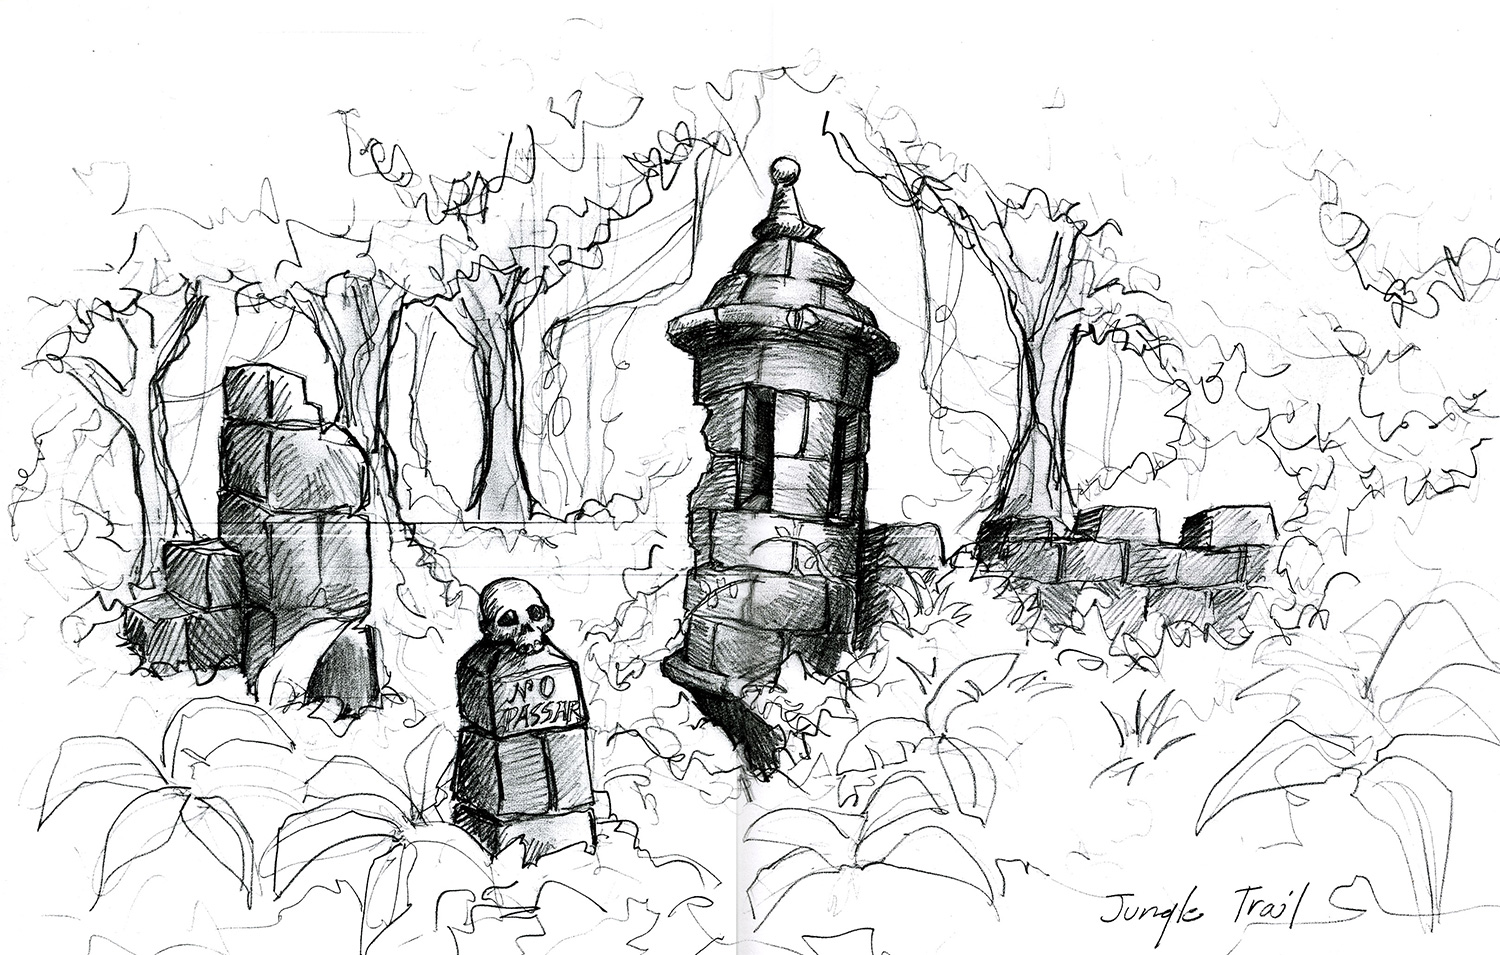 """A conceptual drawing for a ruined """"Garita"""" that guard's the beginning of a magical path through the jungle in """"The Wizards of Waverly Place: The Movie"""" (2009)."""